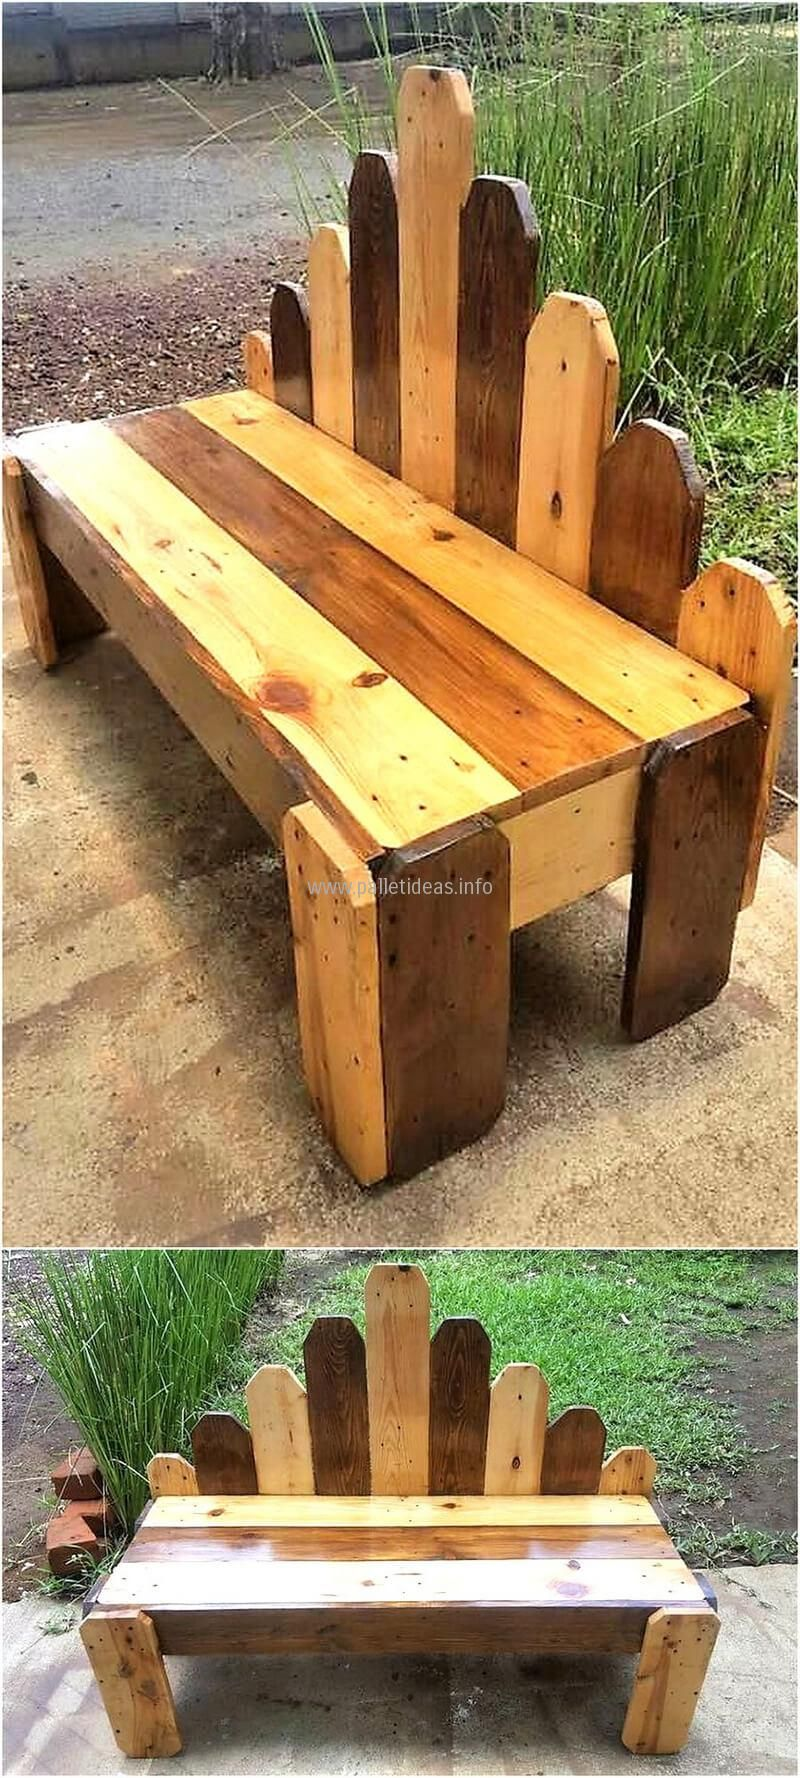 Cute And Neat Wood Pallet Recycling Ideas | Sober, Bench and Creative